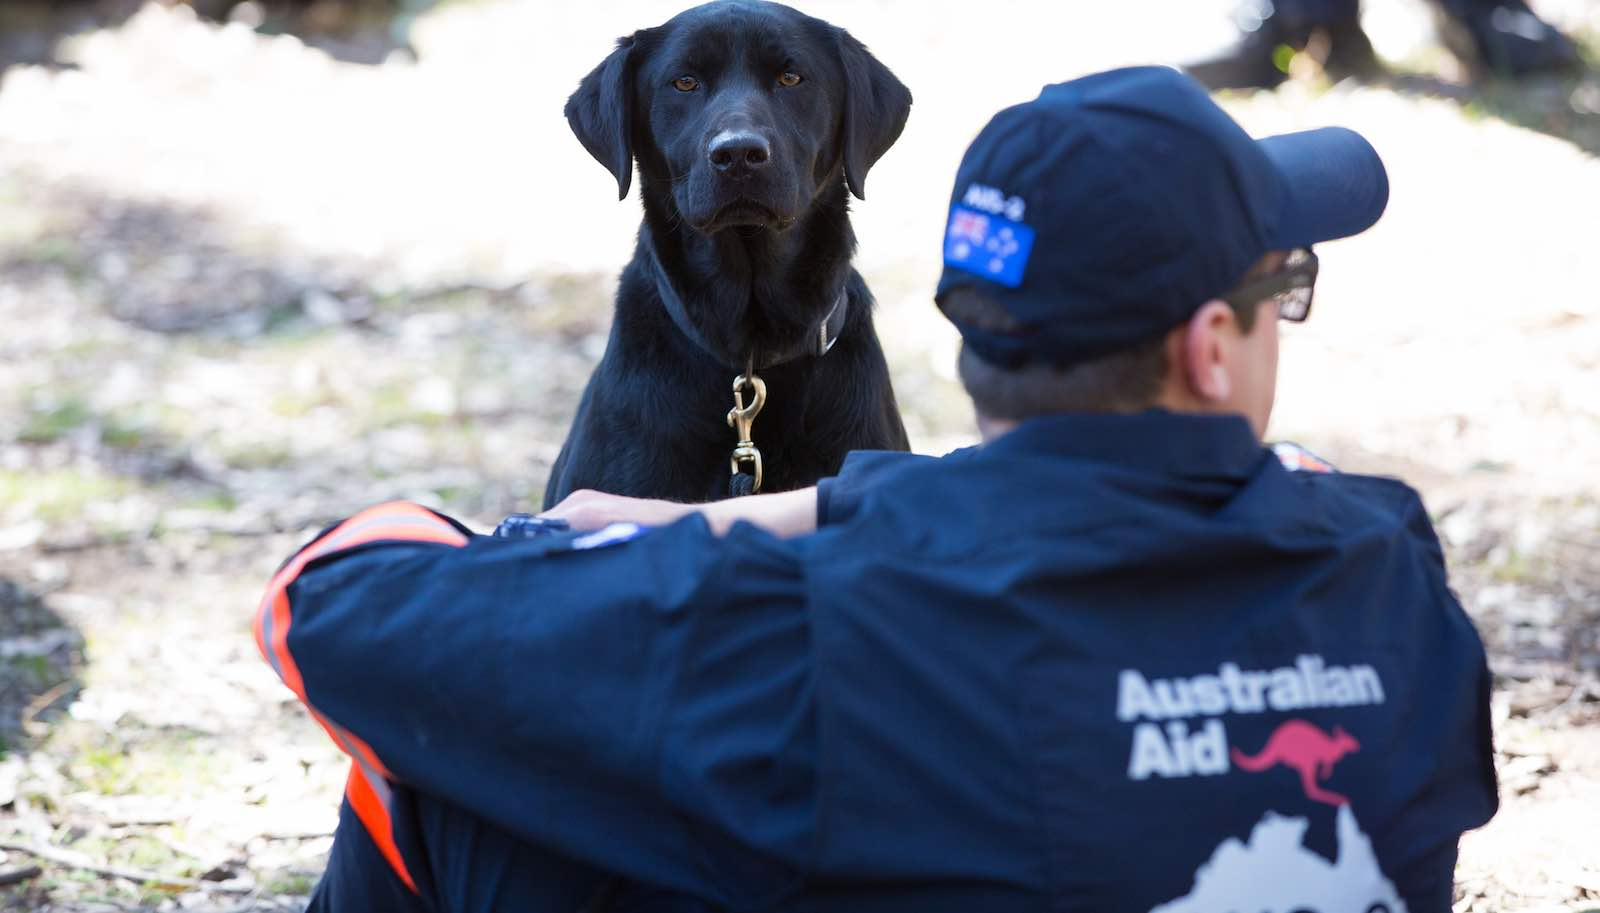 A rescue dog during a disaster response training exercise in Ingleburn, NSW (Photo: Linda Roche/DFAT)